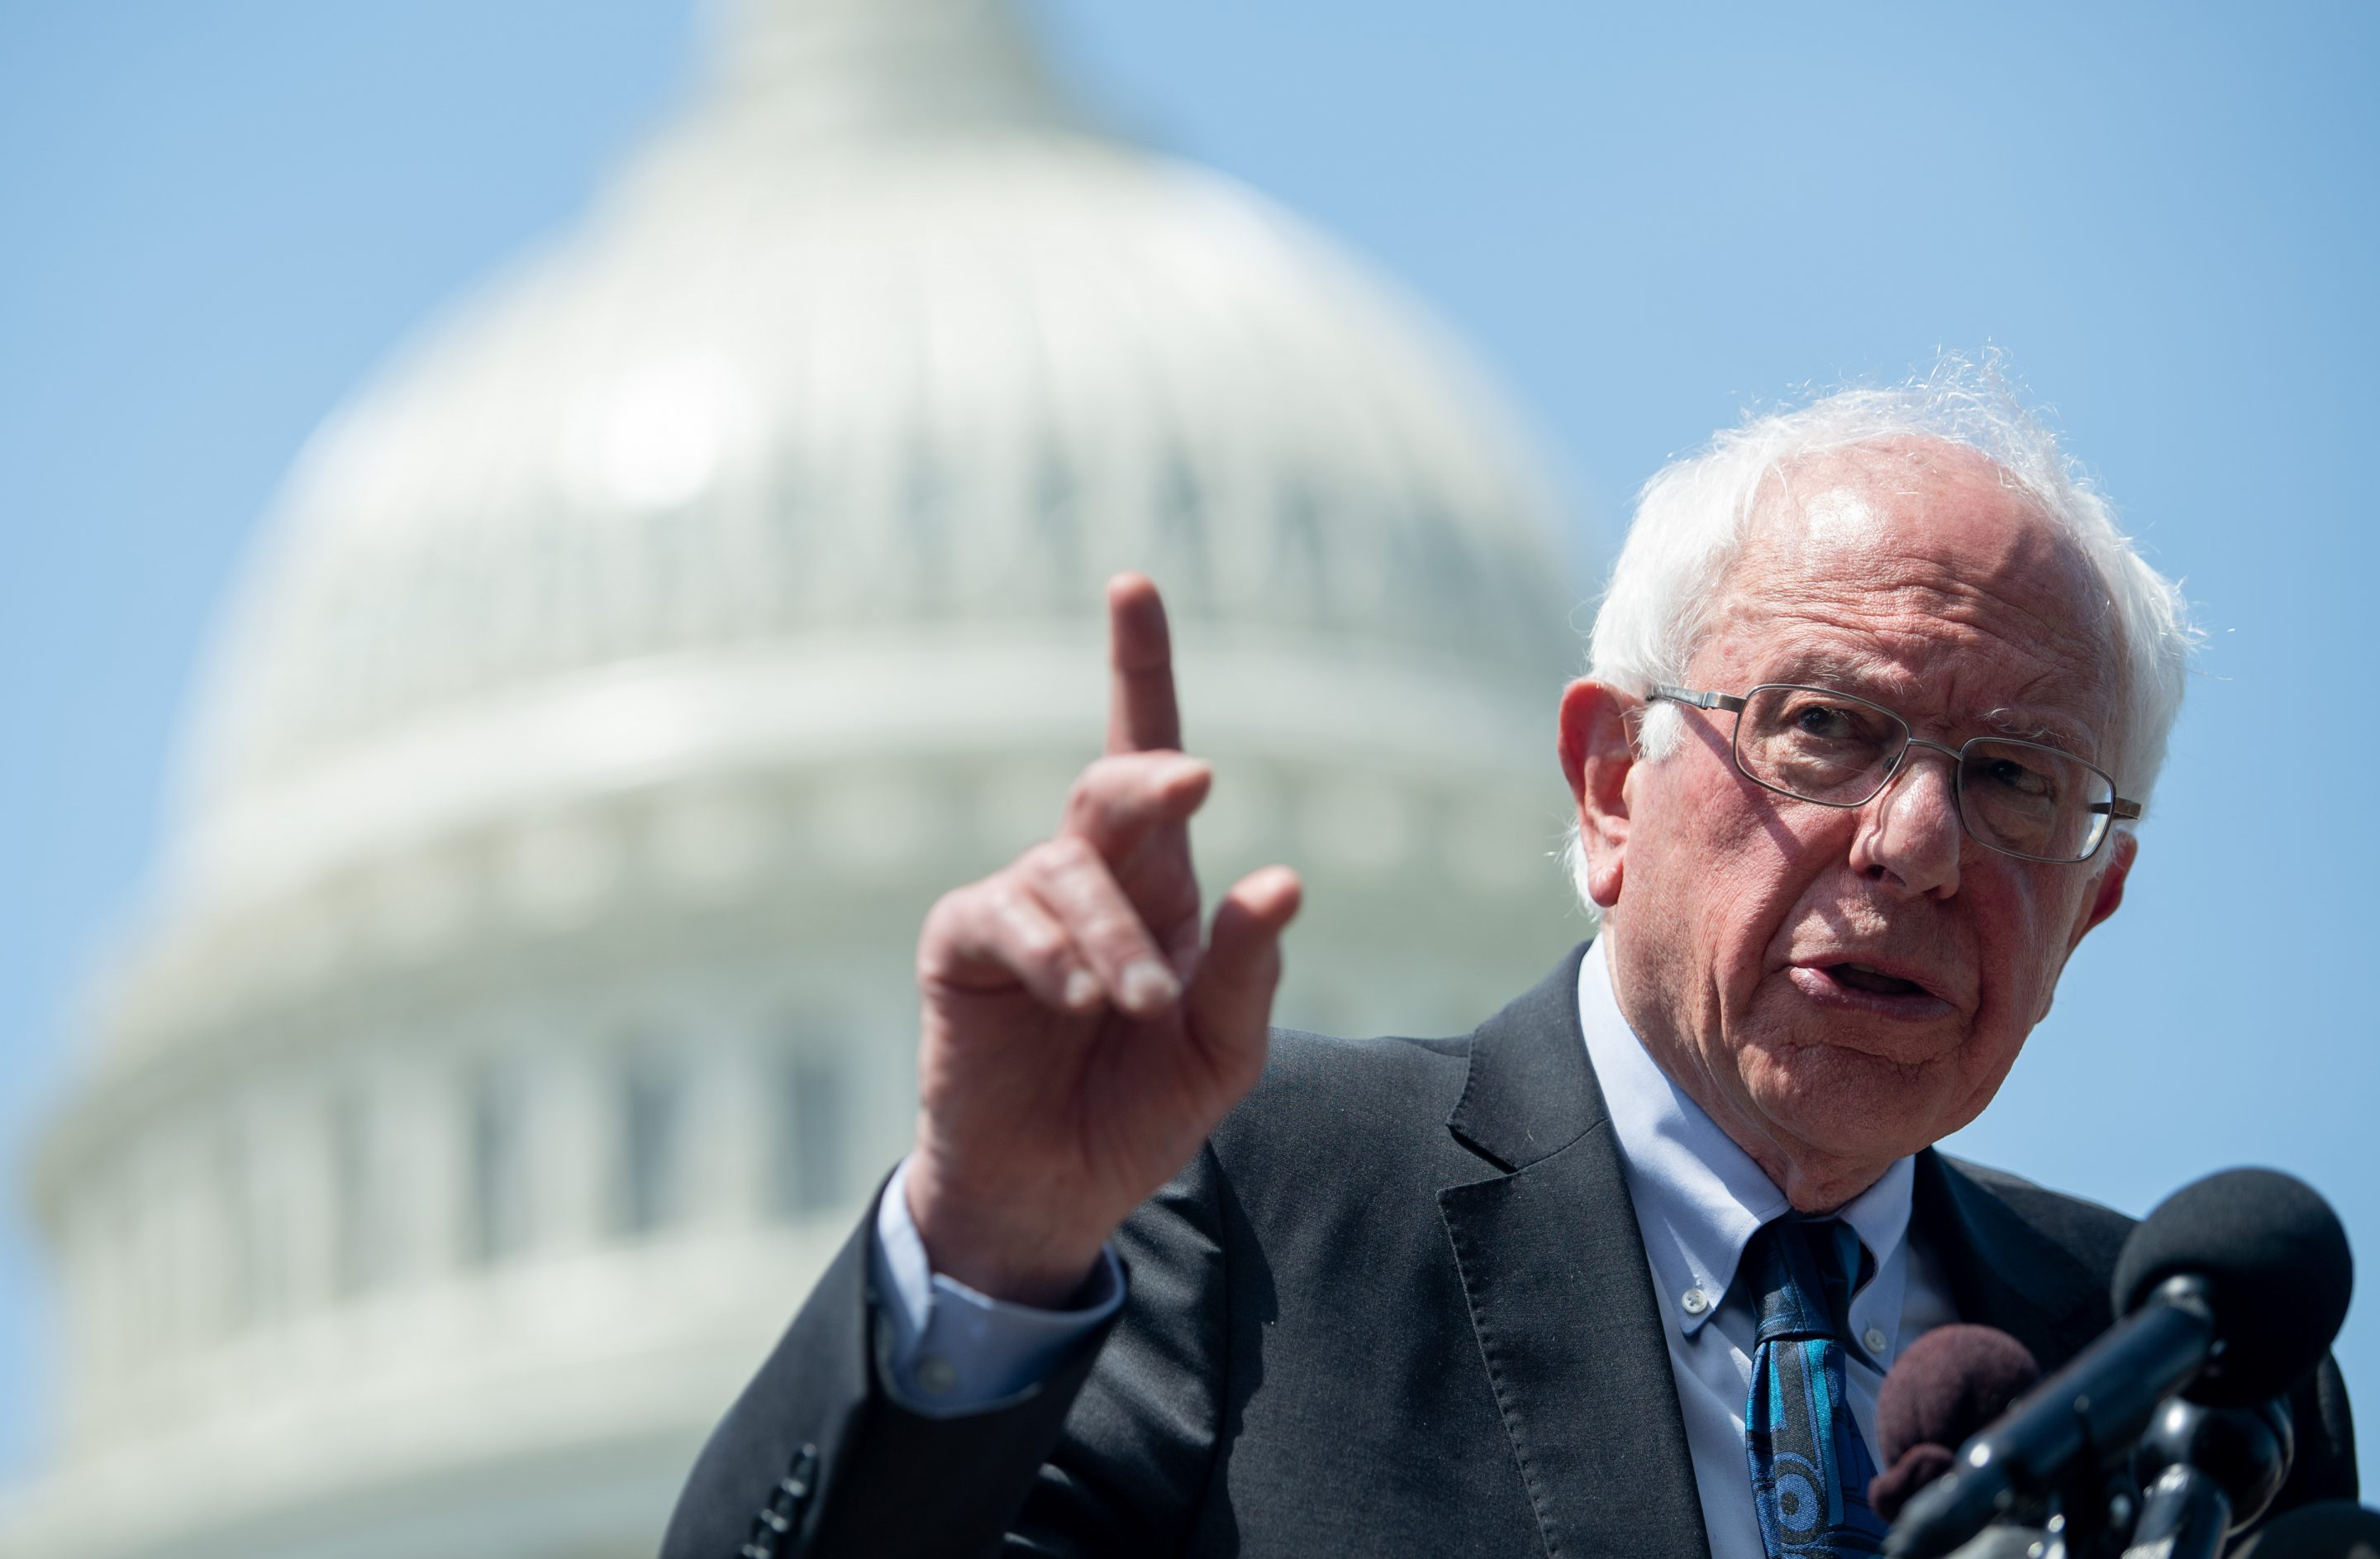 Sen. Bernie Sanders speaks during a press conference outside the U.S. Capitol.